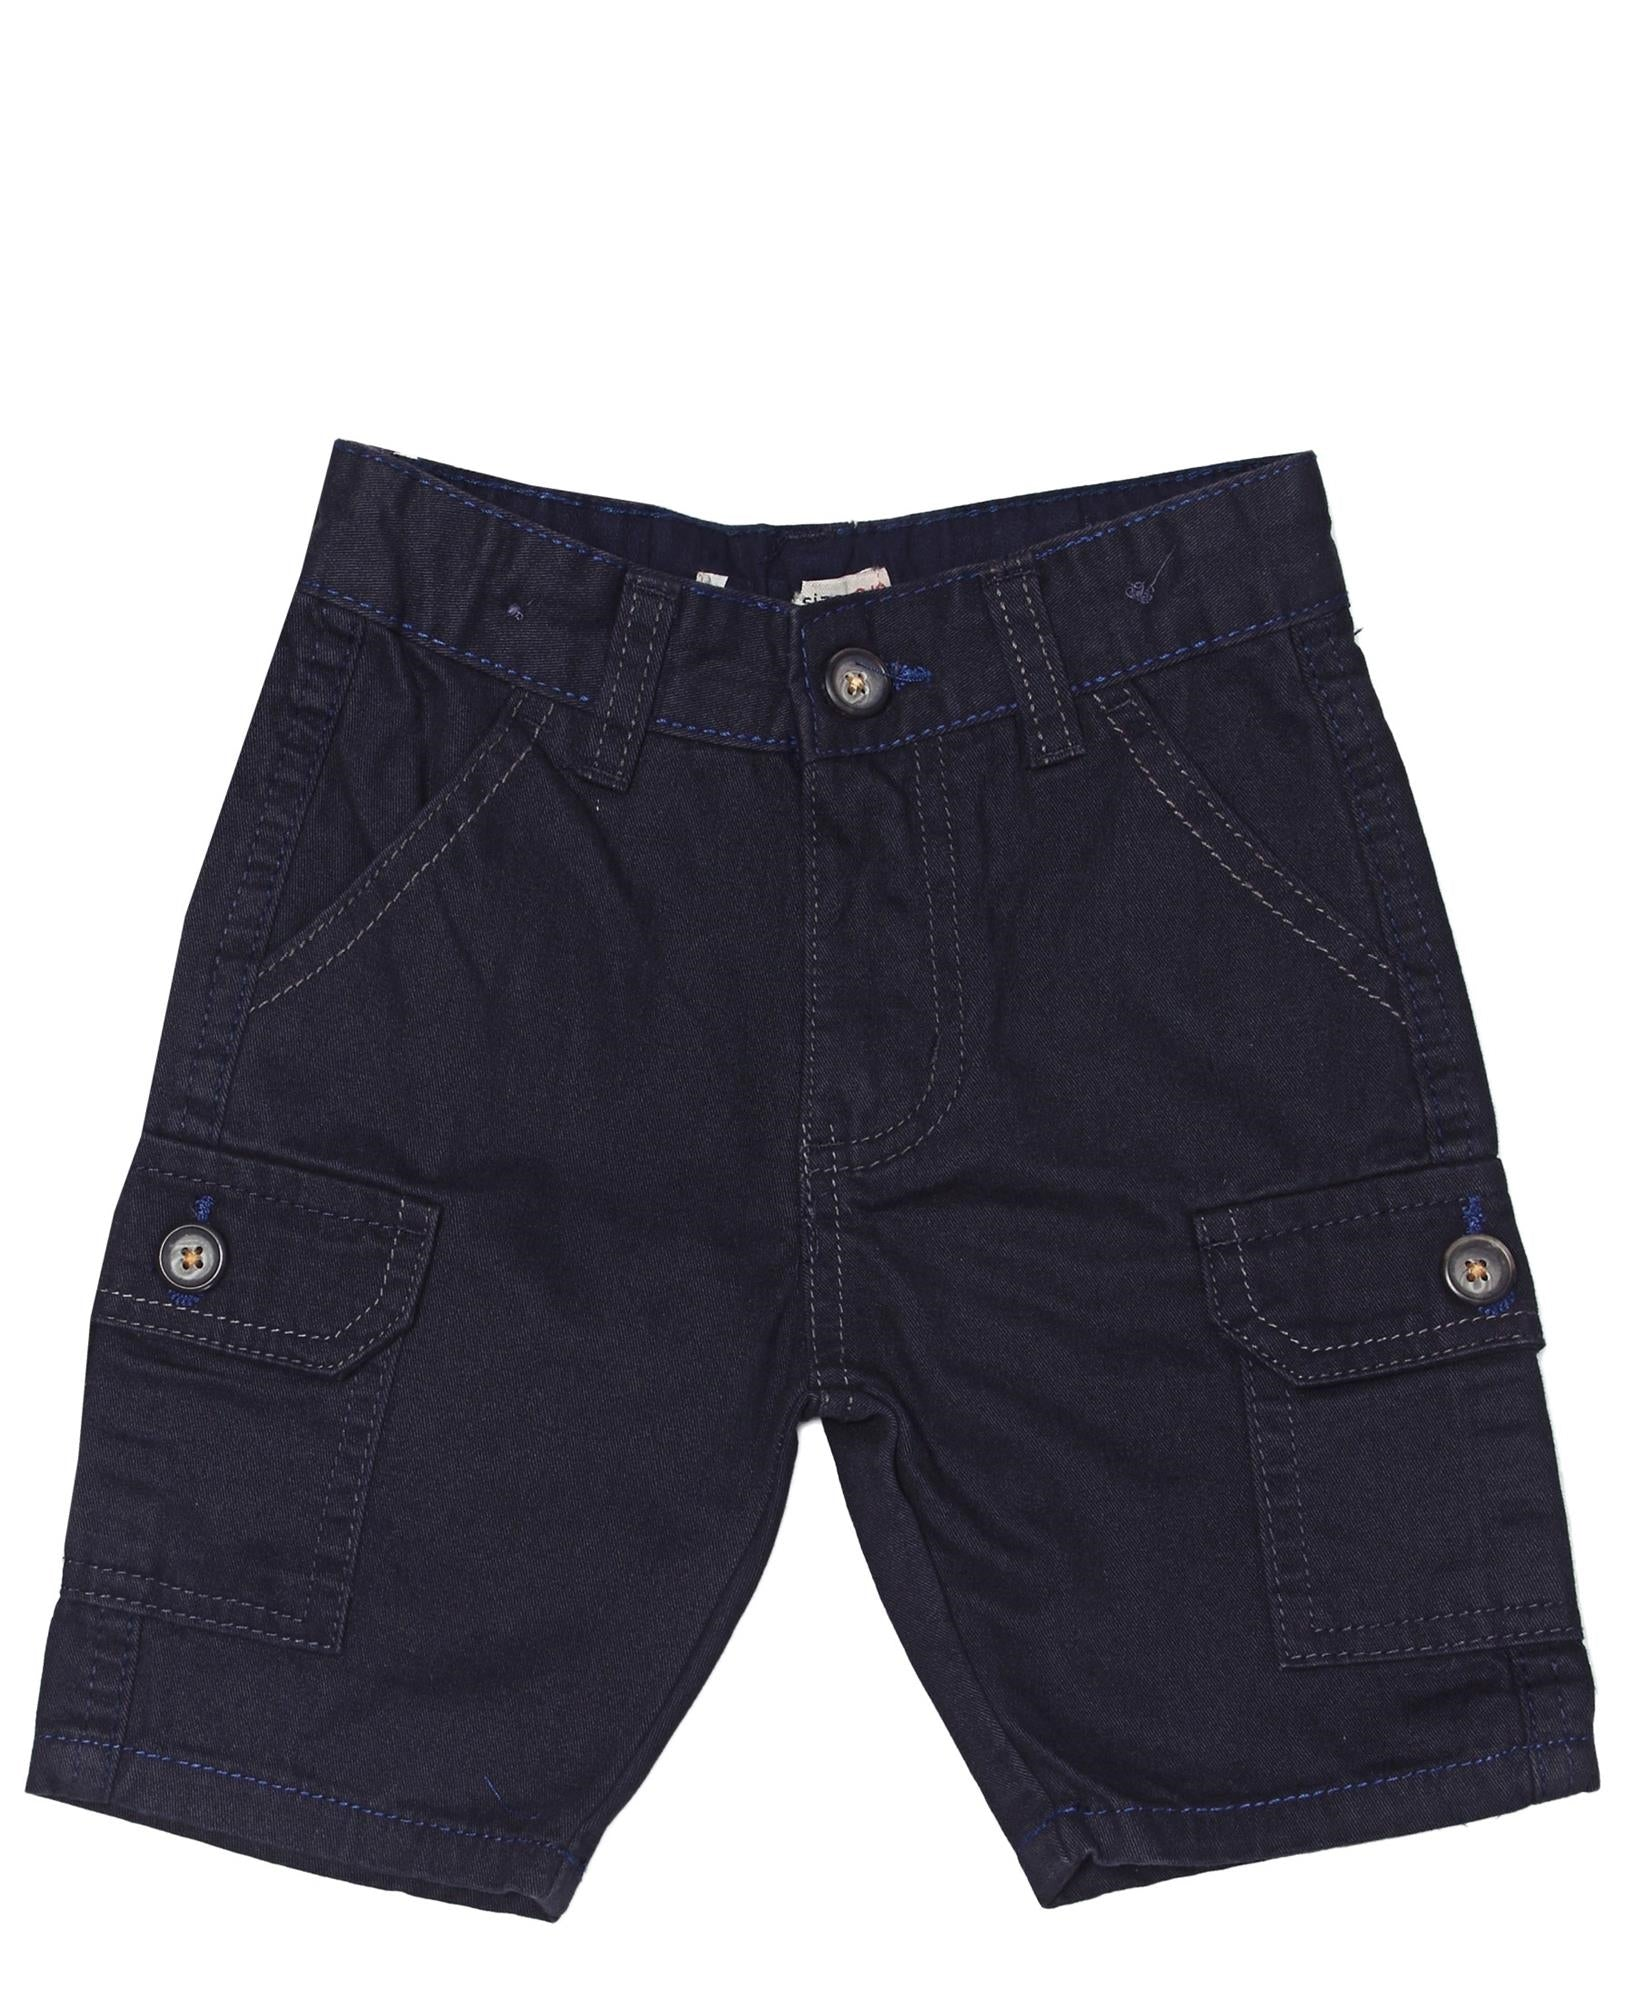 Boys Cargo Shorts - Navy